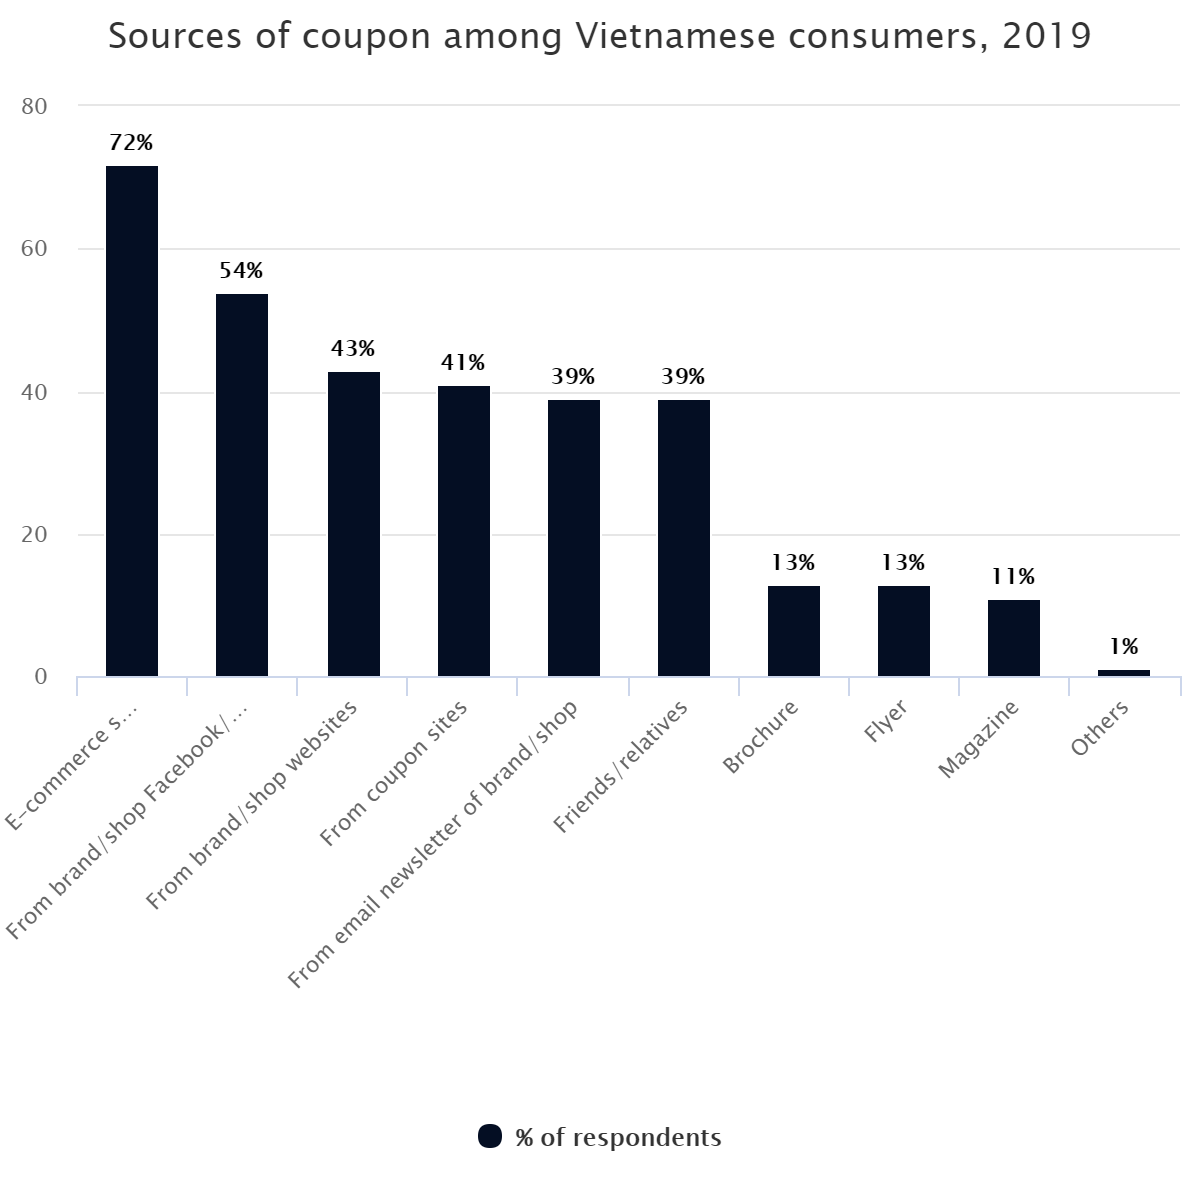 Sources of coupon among Vietnamese consumers, 2019